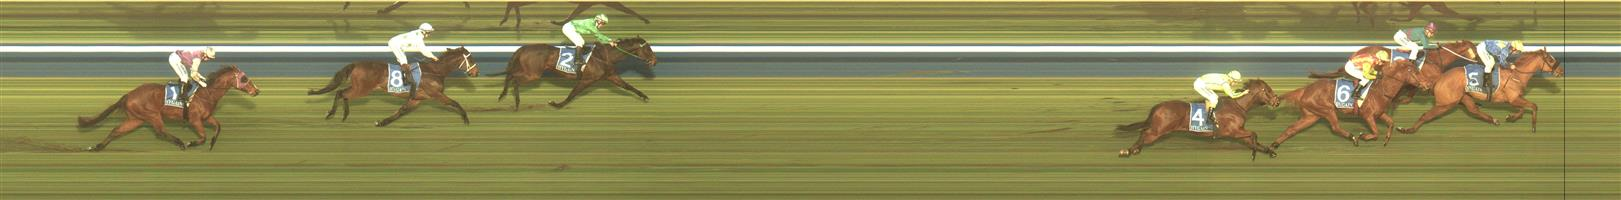 CASTERTON Race 6 No. 4 French Fizz  Result : 4th at SP $3.70. After settling in third, behind the leaders, moved off the fence on the home turn and while ran home respectably was always a length or so behind the leaders. Outcome -1.50 Units.